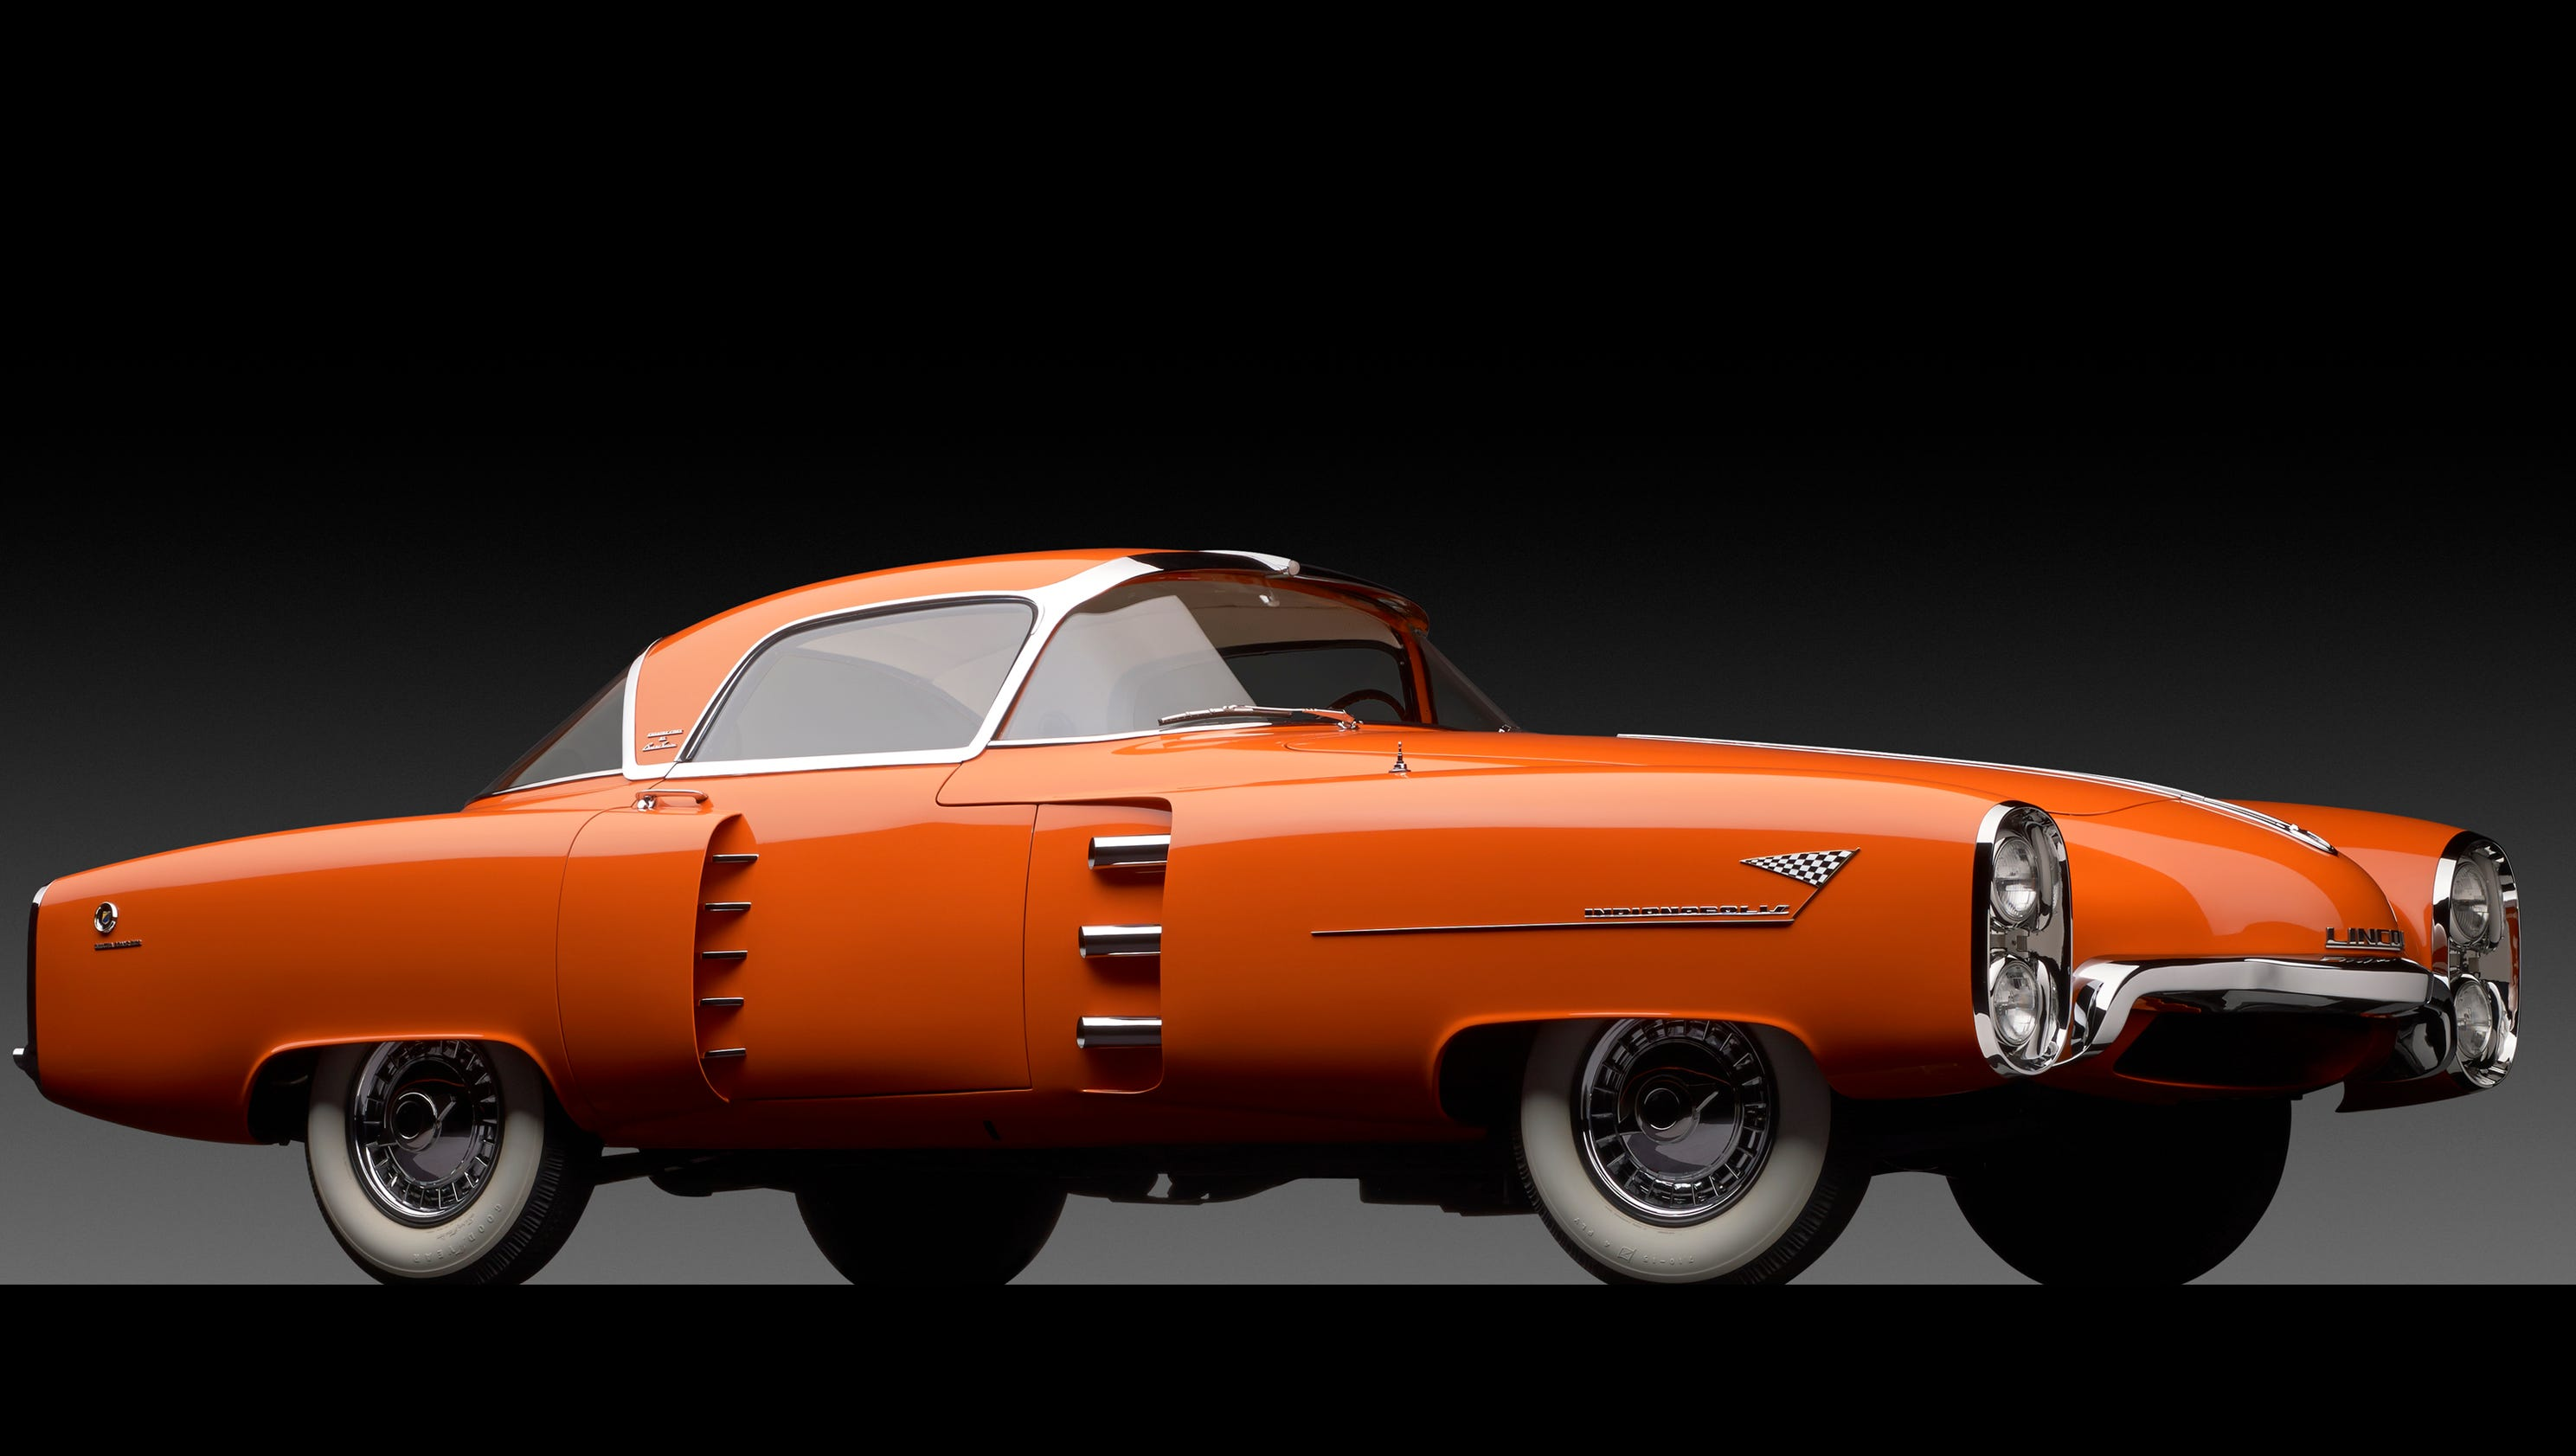 Famous Lincoln Concept Car Of The 1950s